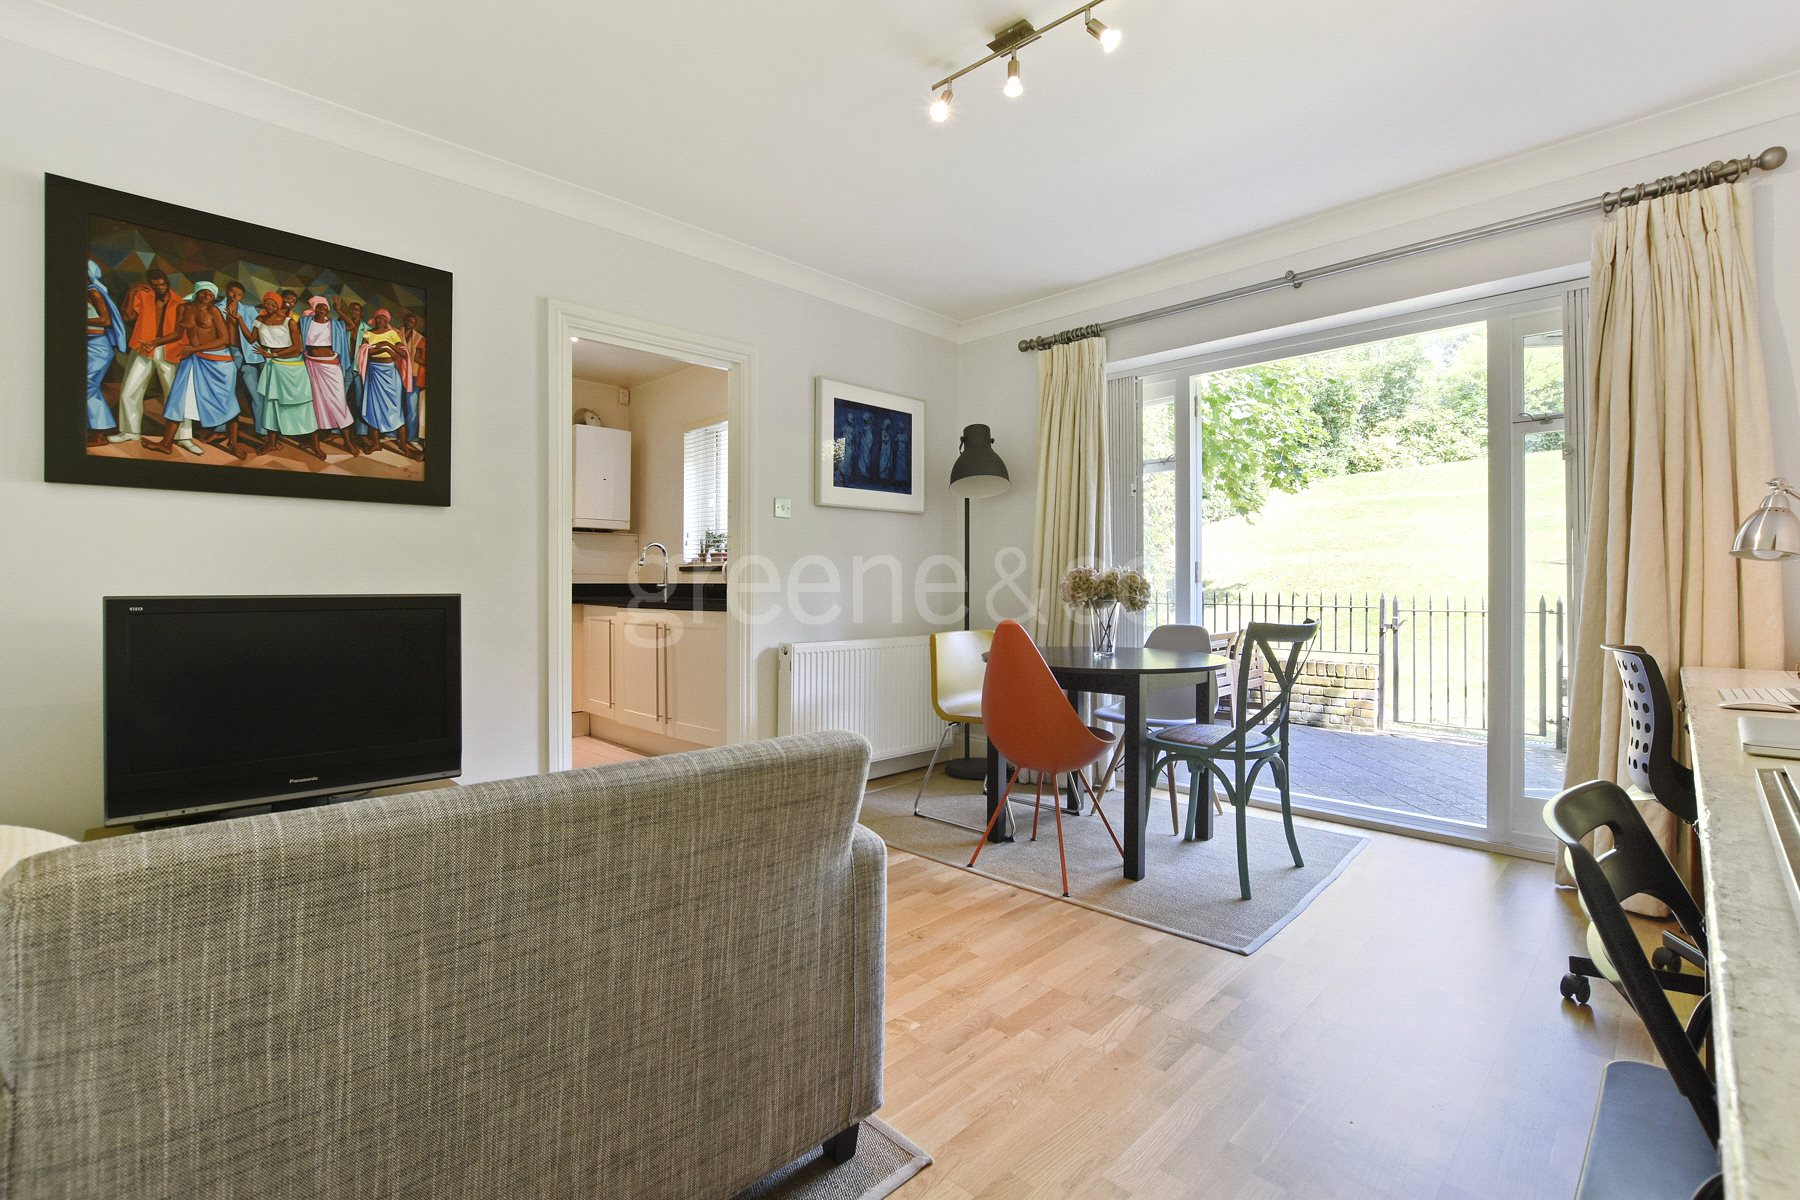 2 Bedrooms Flat for sale in Standard Apartments, Crescent Road, Crouch End, N8